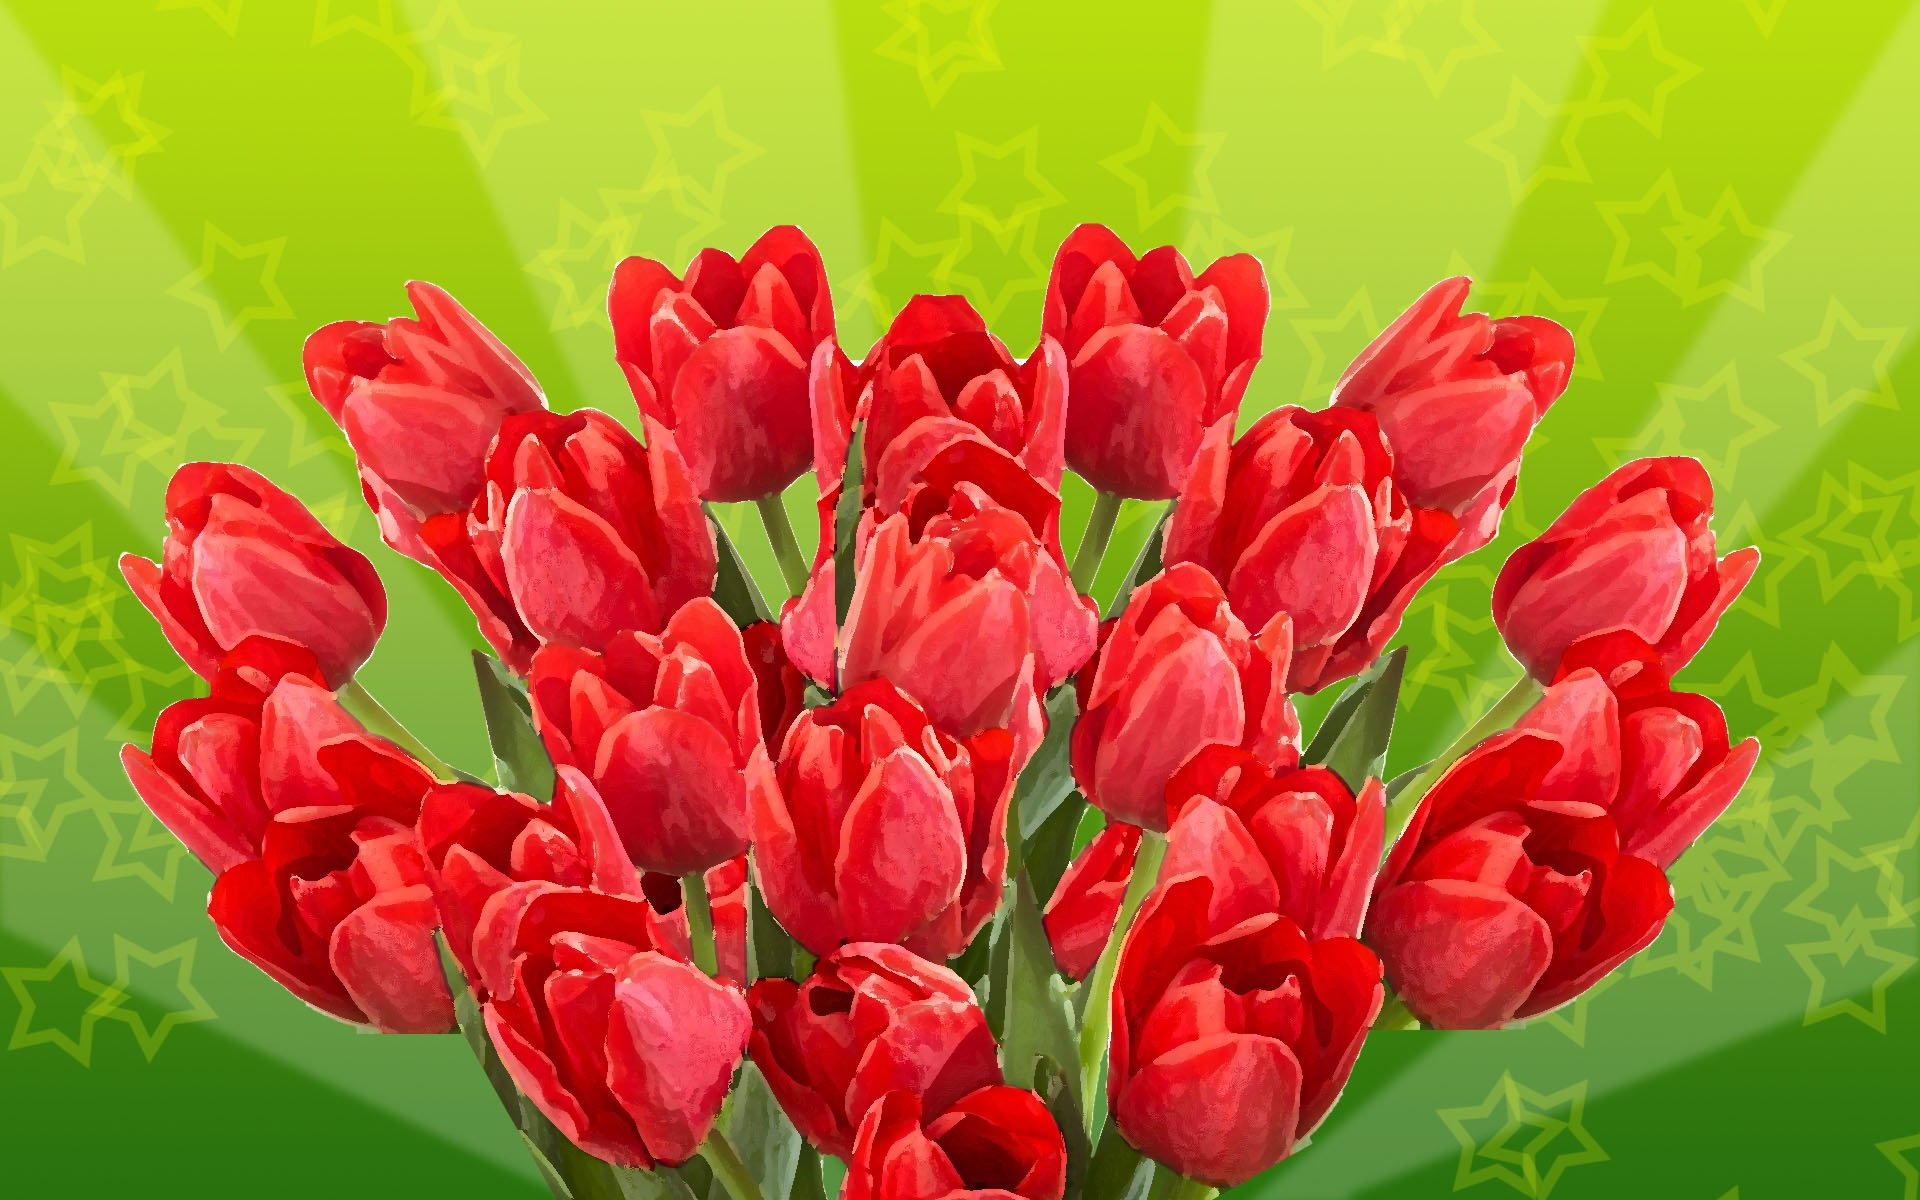 google images flowers wallpaper wallpapersafari